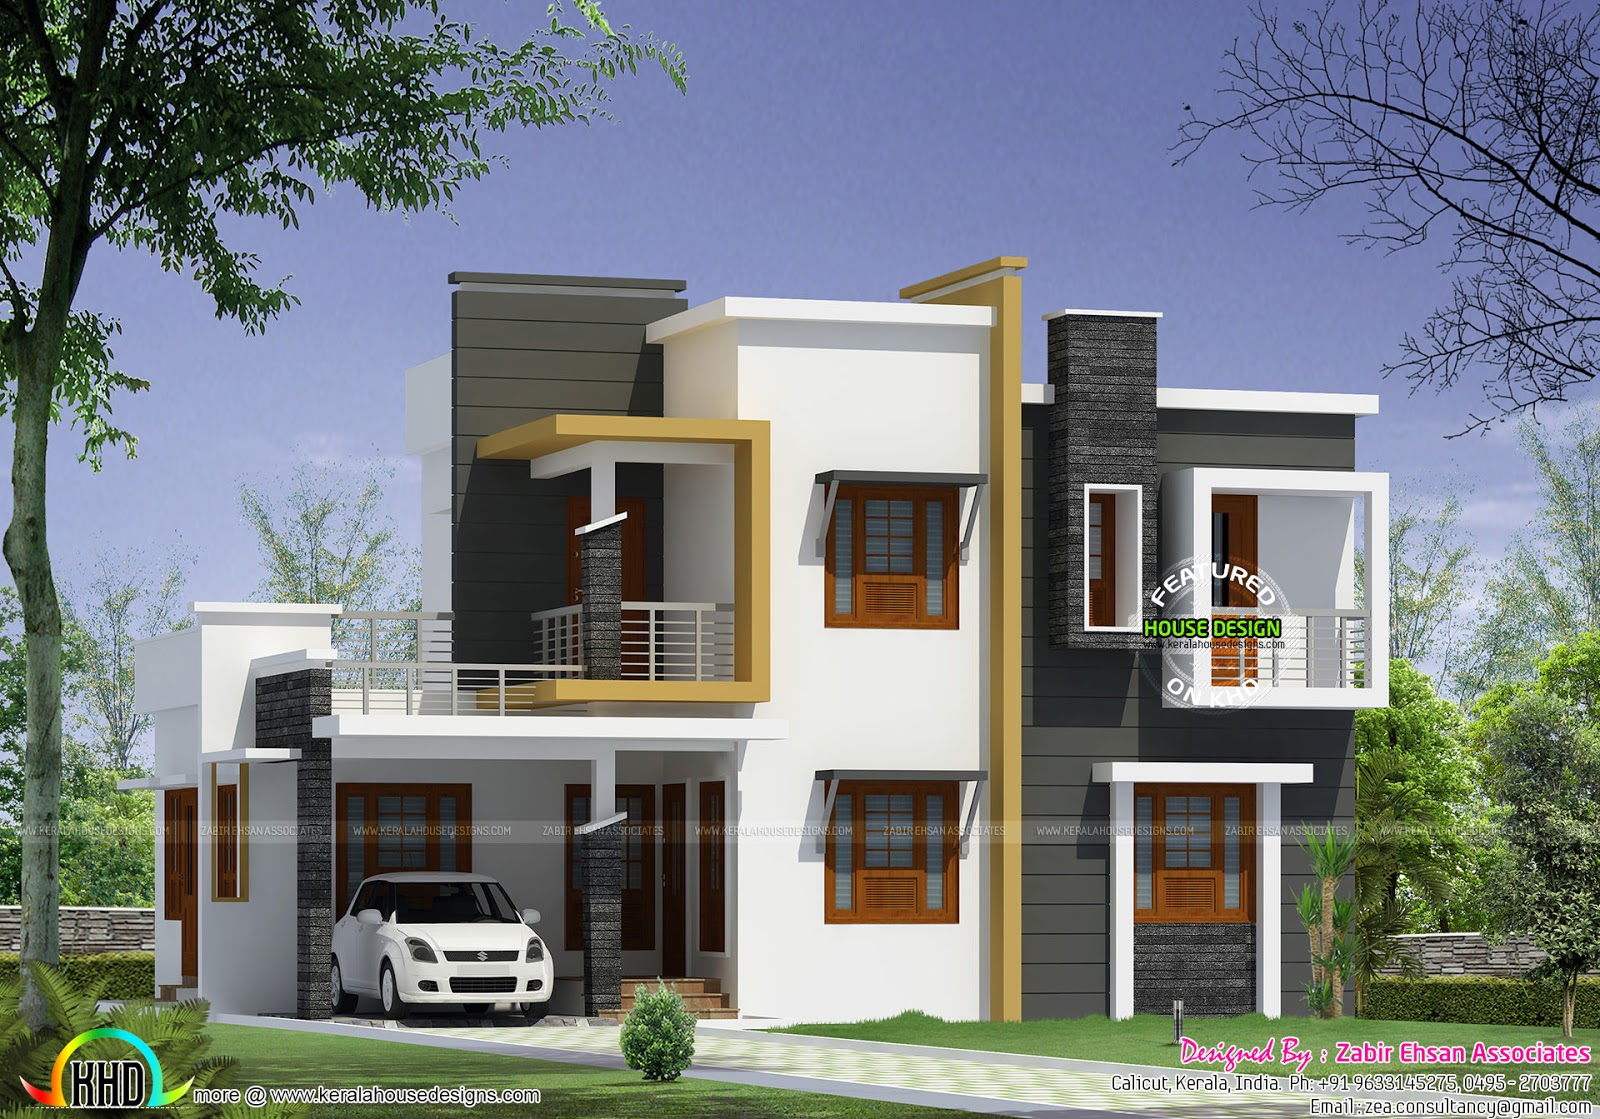 Box type modern house plan kerala home design and floor for Contemporary home plans